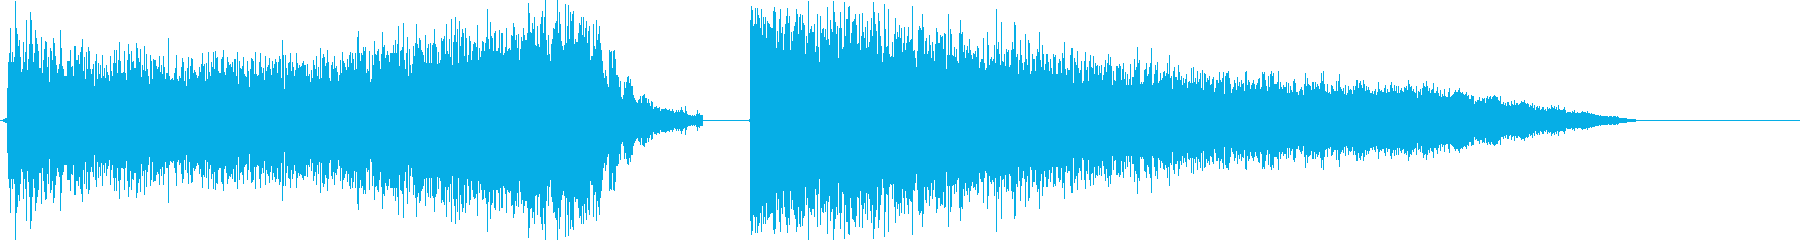 Super powerful beam's reproduced waveform